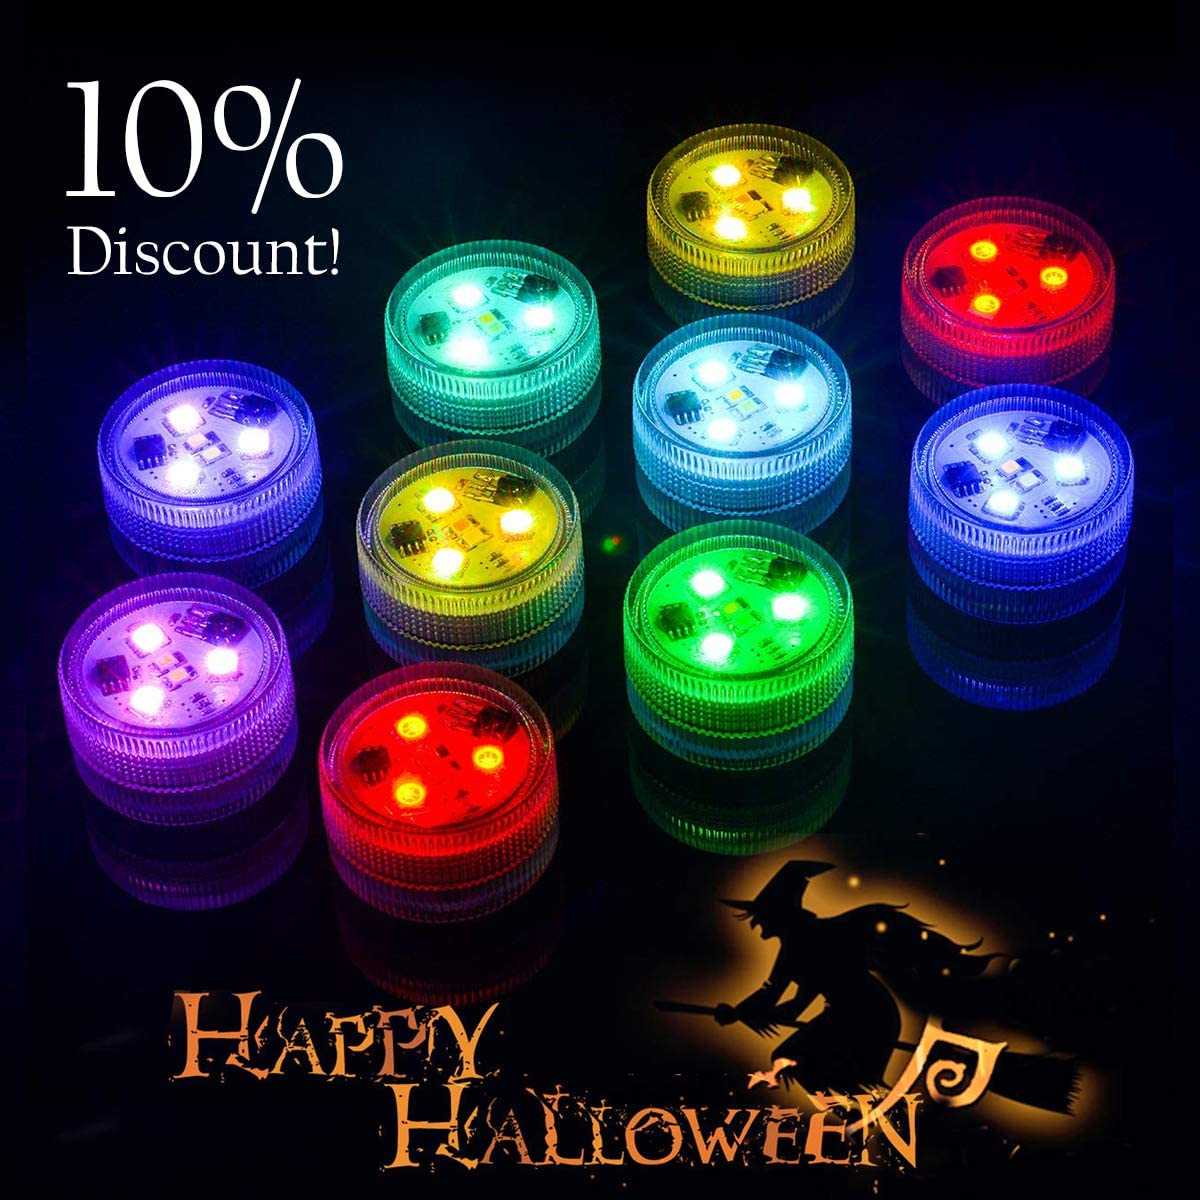 Homemory 10pcs Submersible LED Lights with Remote, Waterproof, Battery Operated Color Changing LED Vase Light